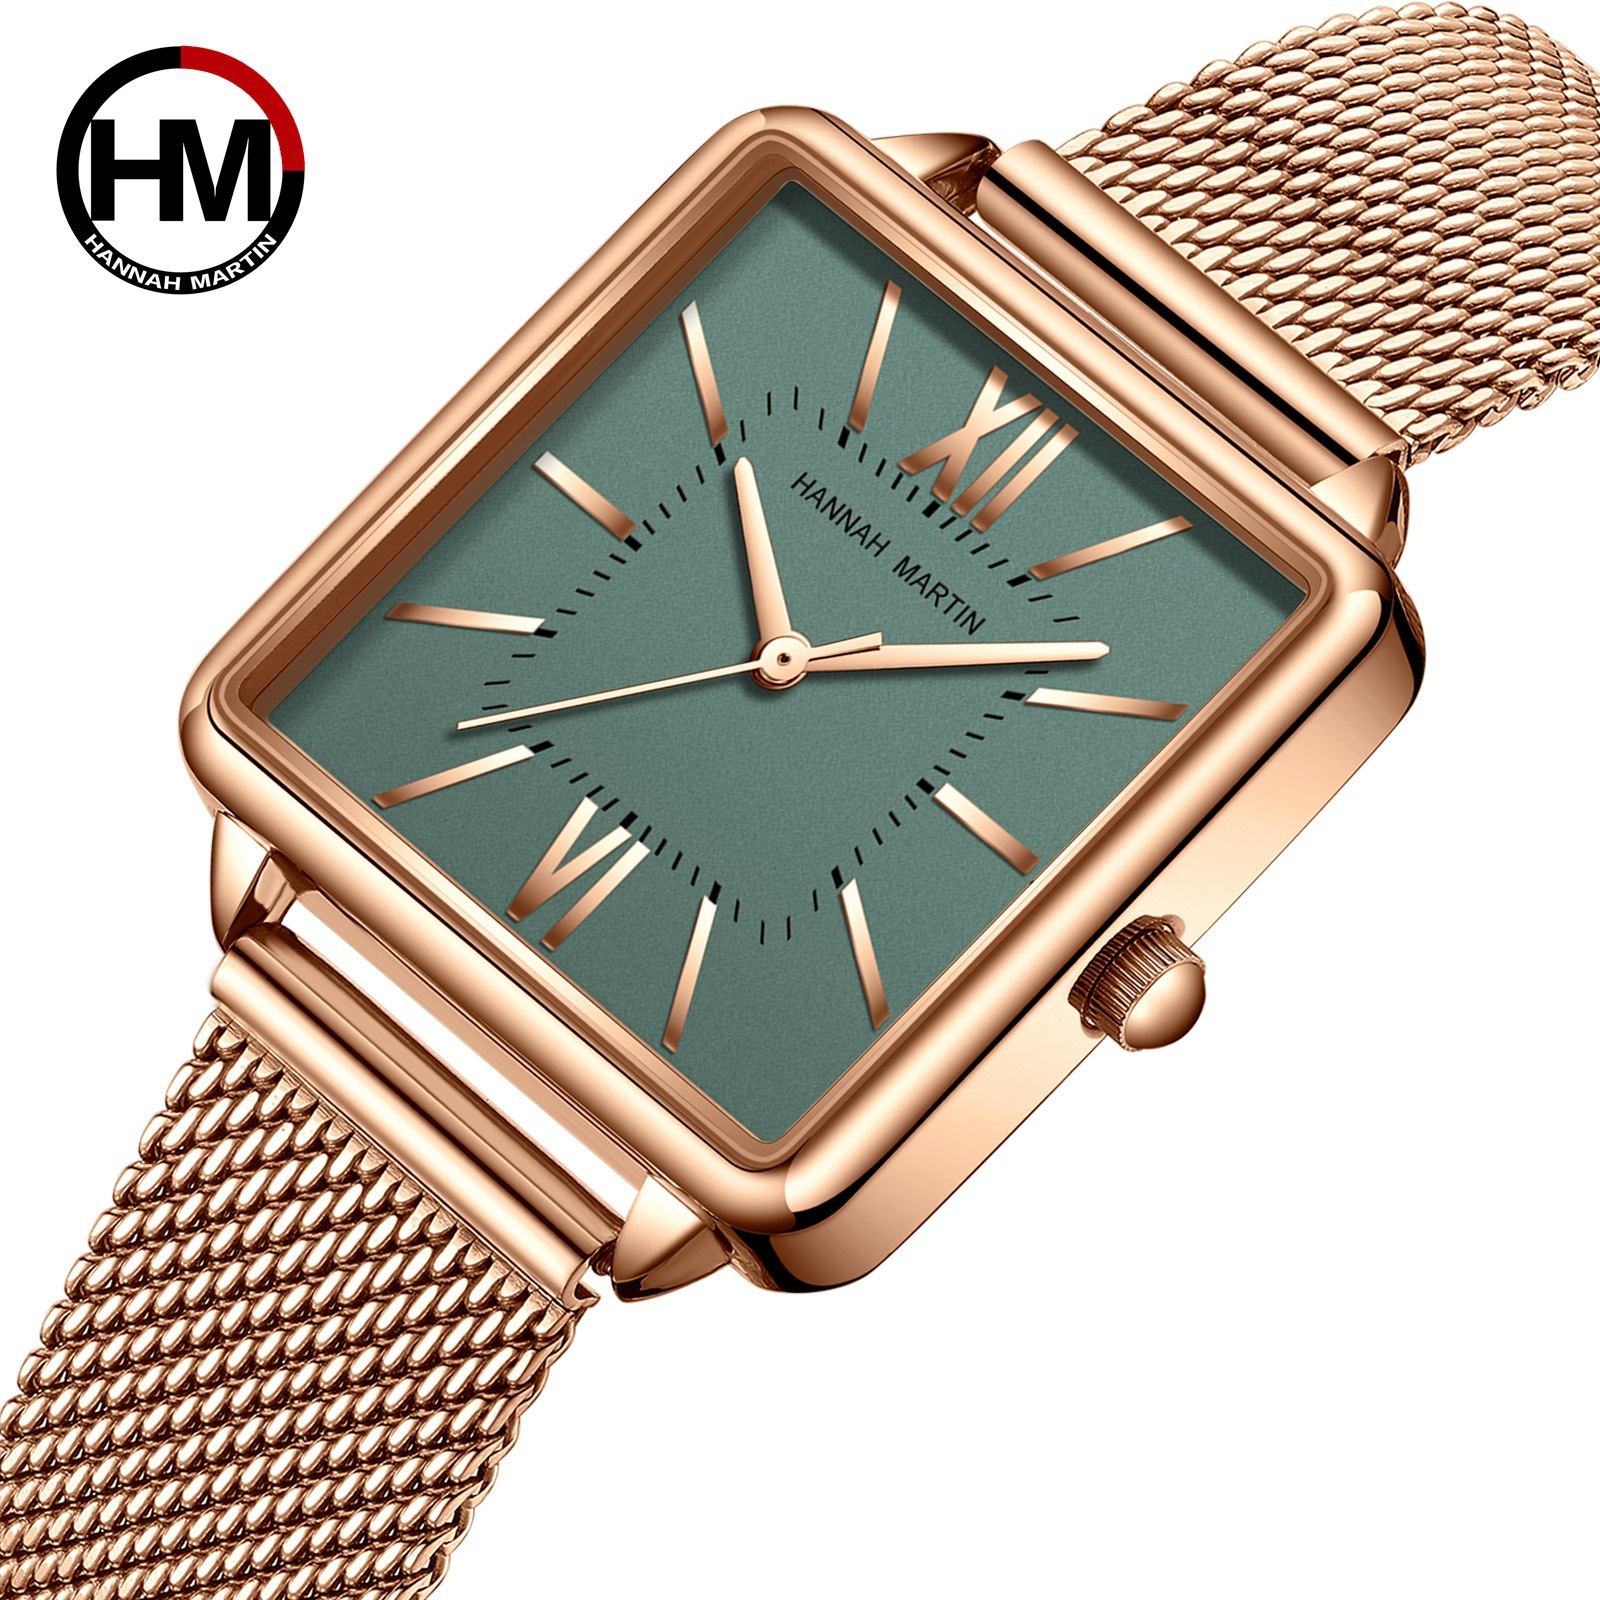 2020 New Top Japan Quartz Movement Women's Watch Design Square Full Stainless Steel Wrist Watches Lady Gold Green Hour A3829